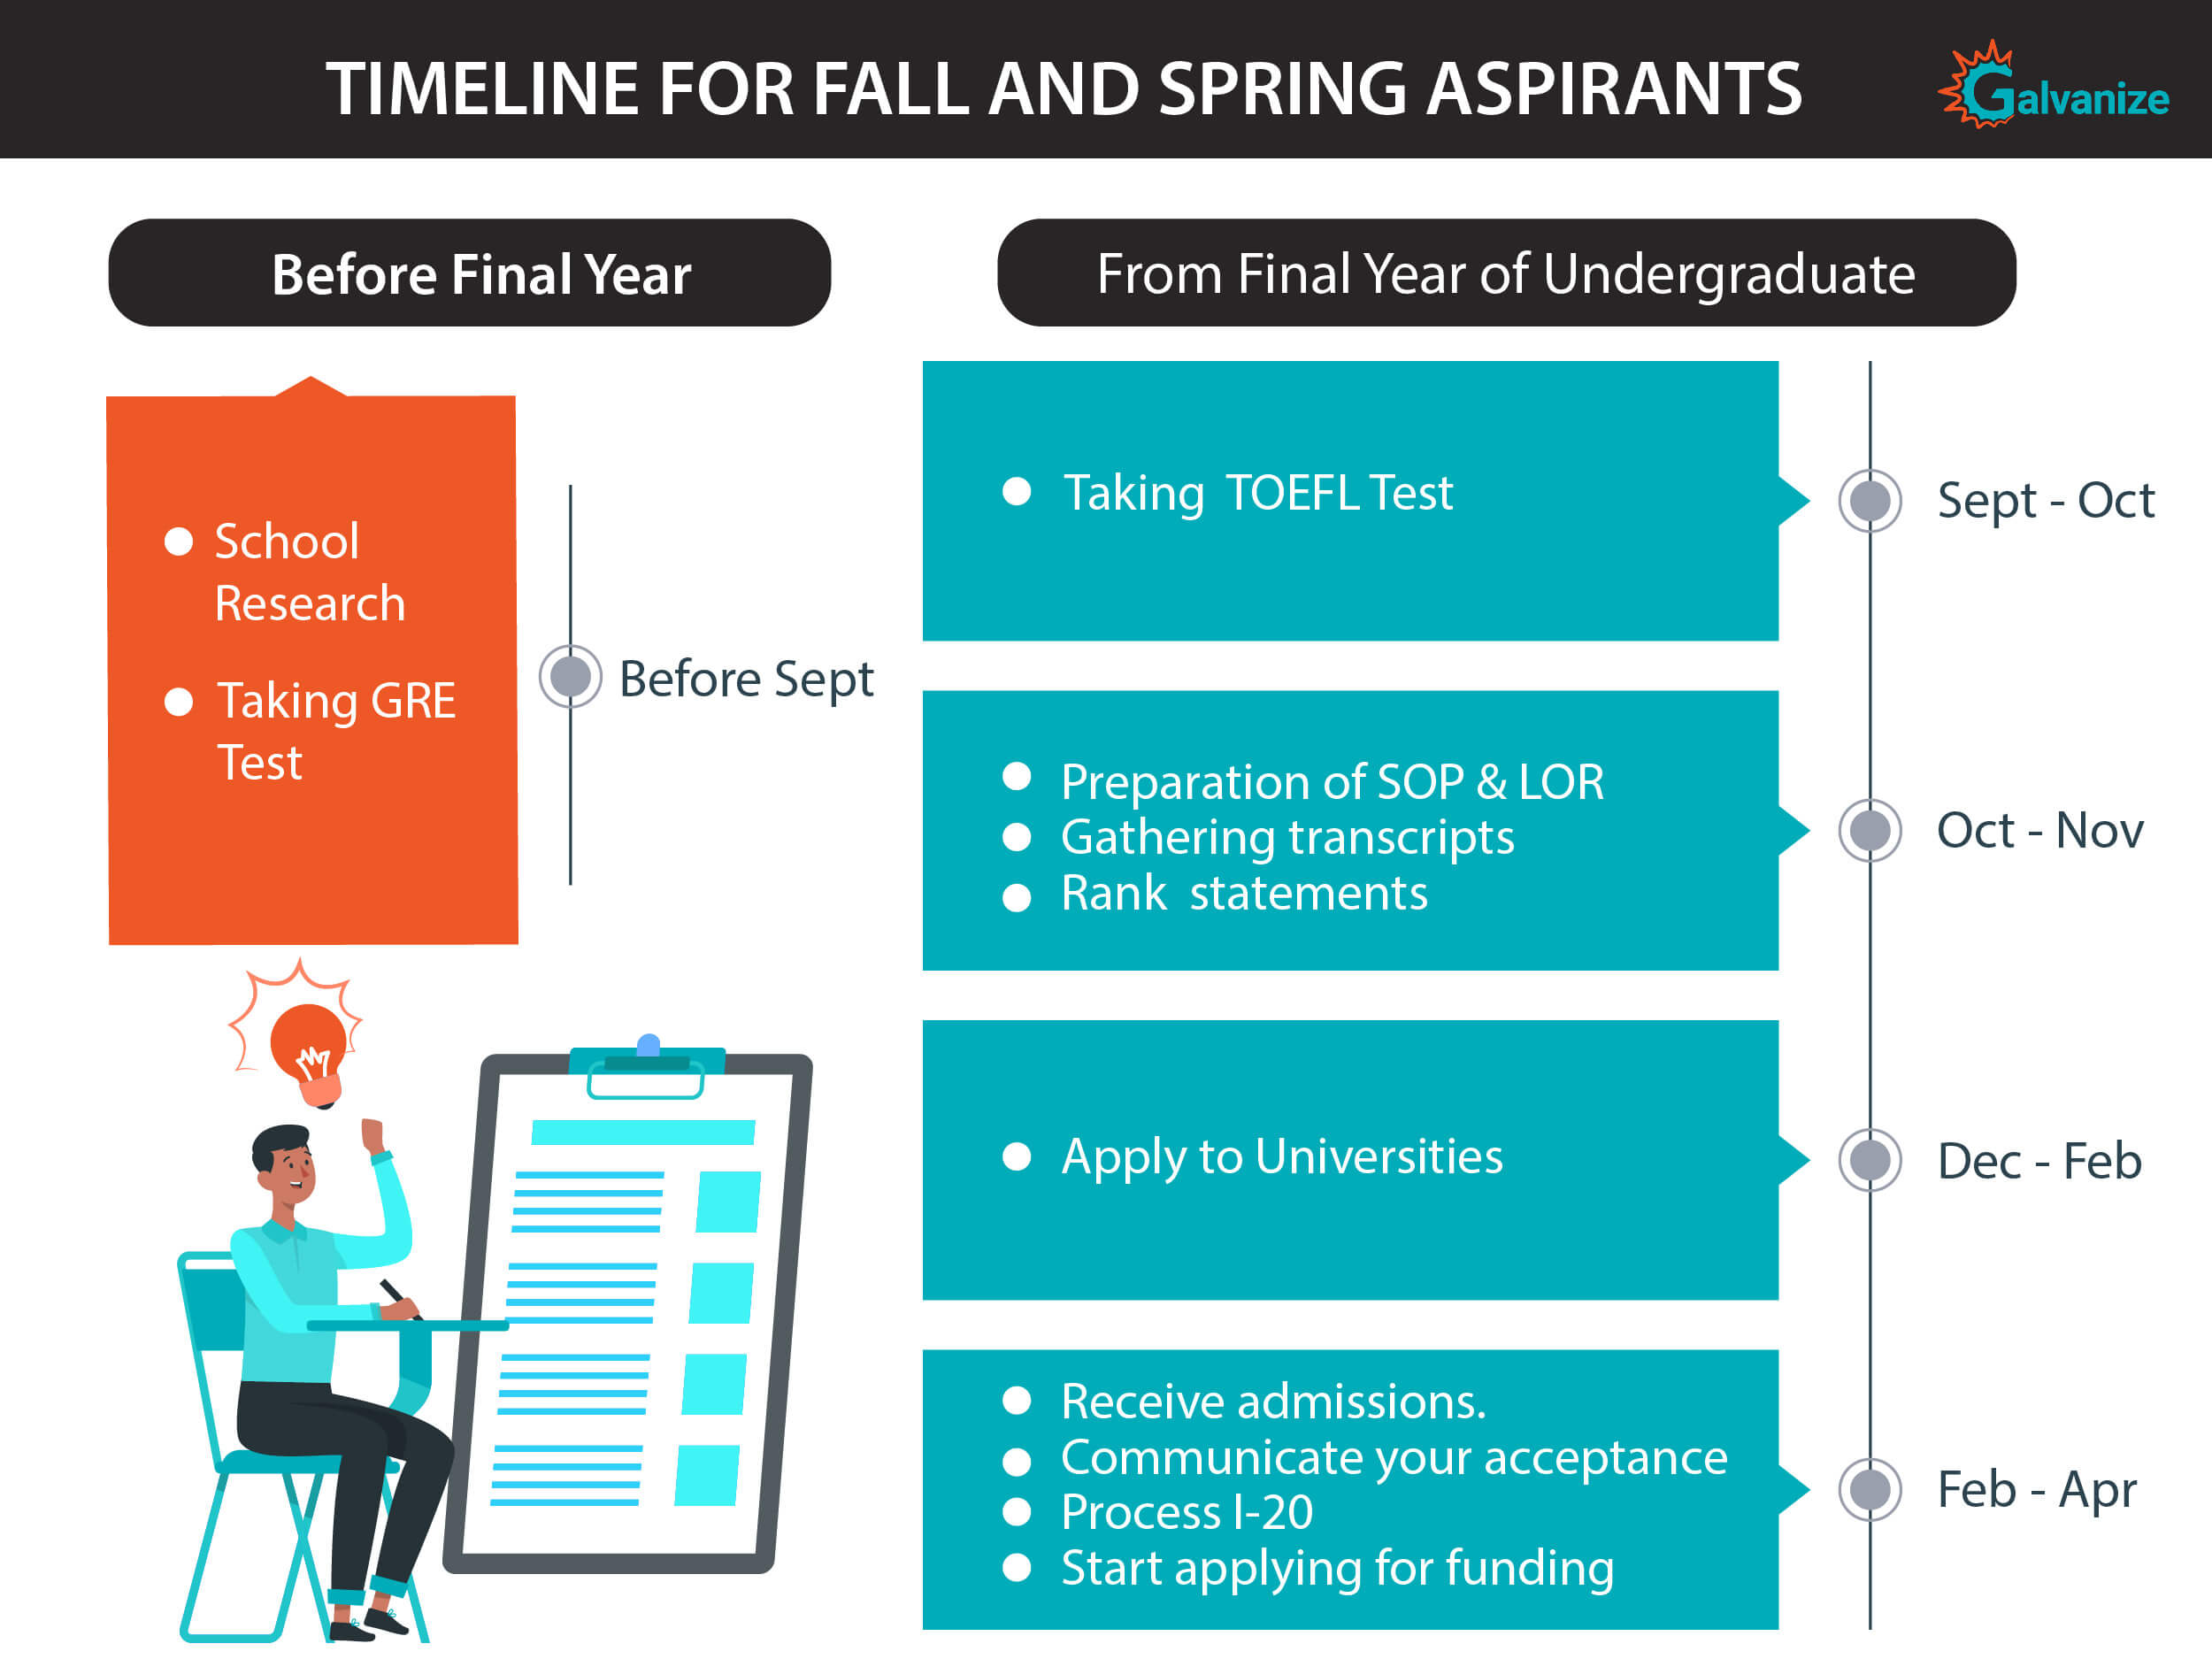 Timeline for Fall and spring Aspirants